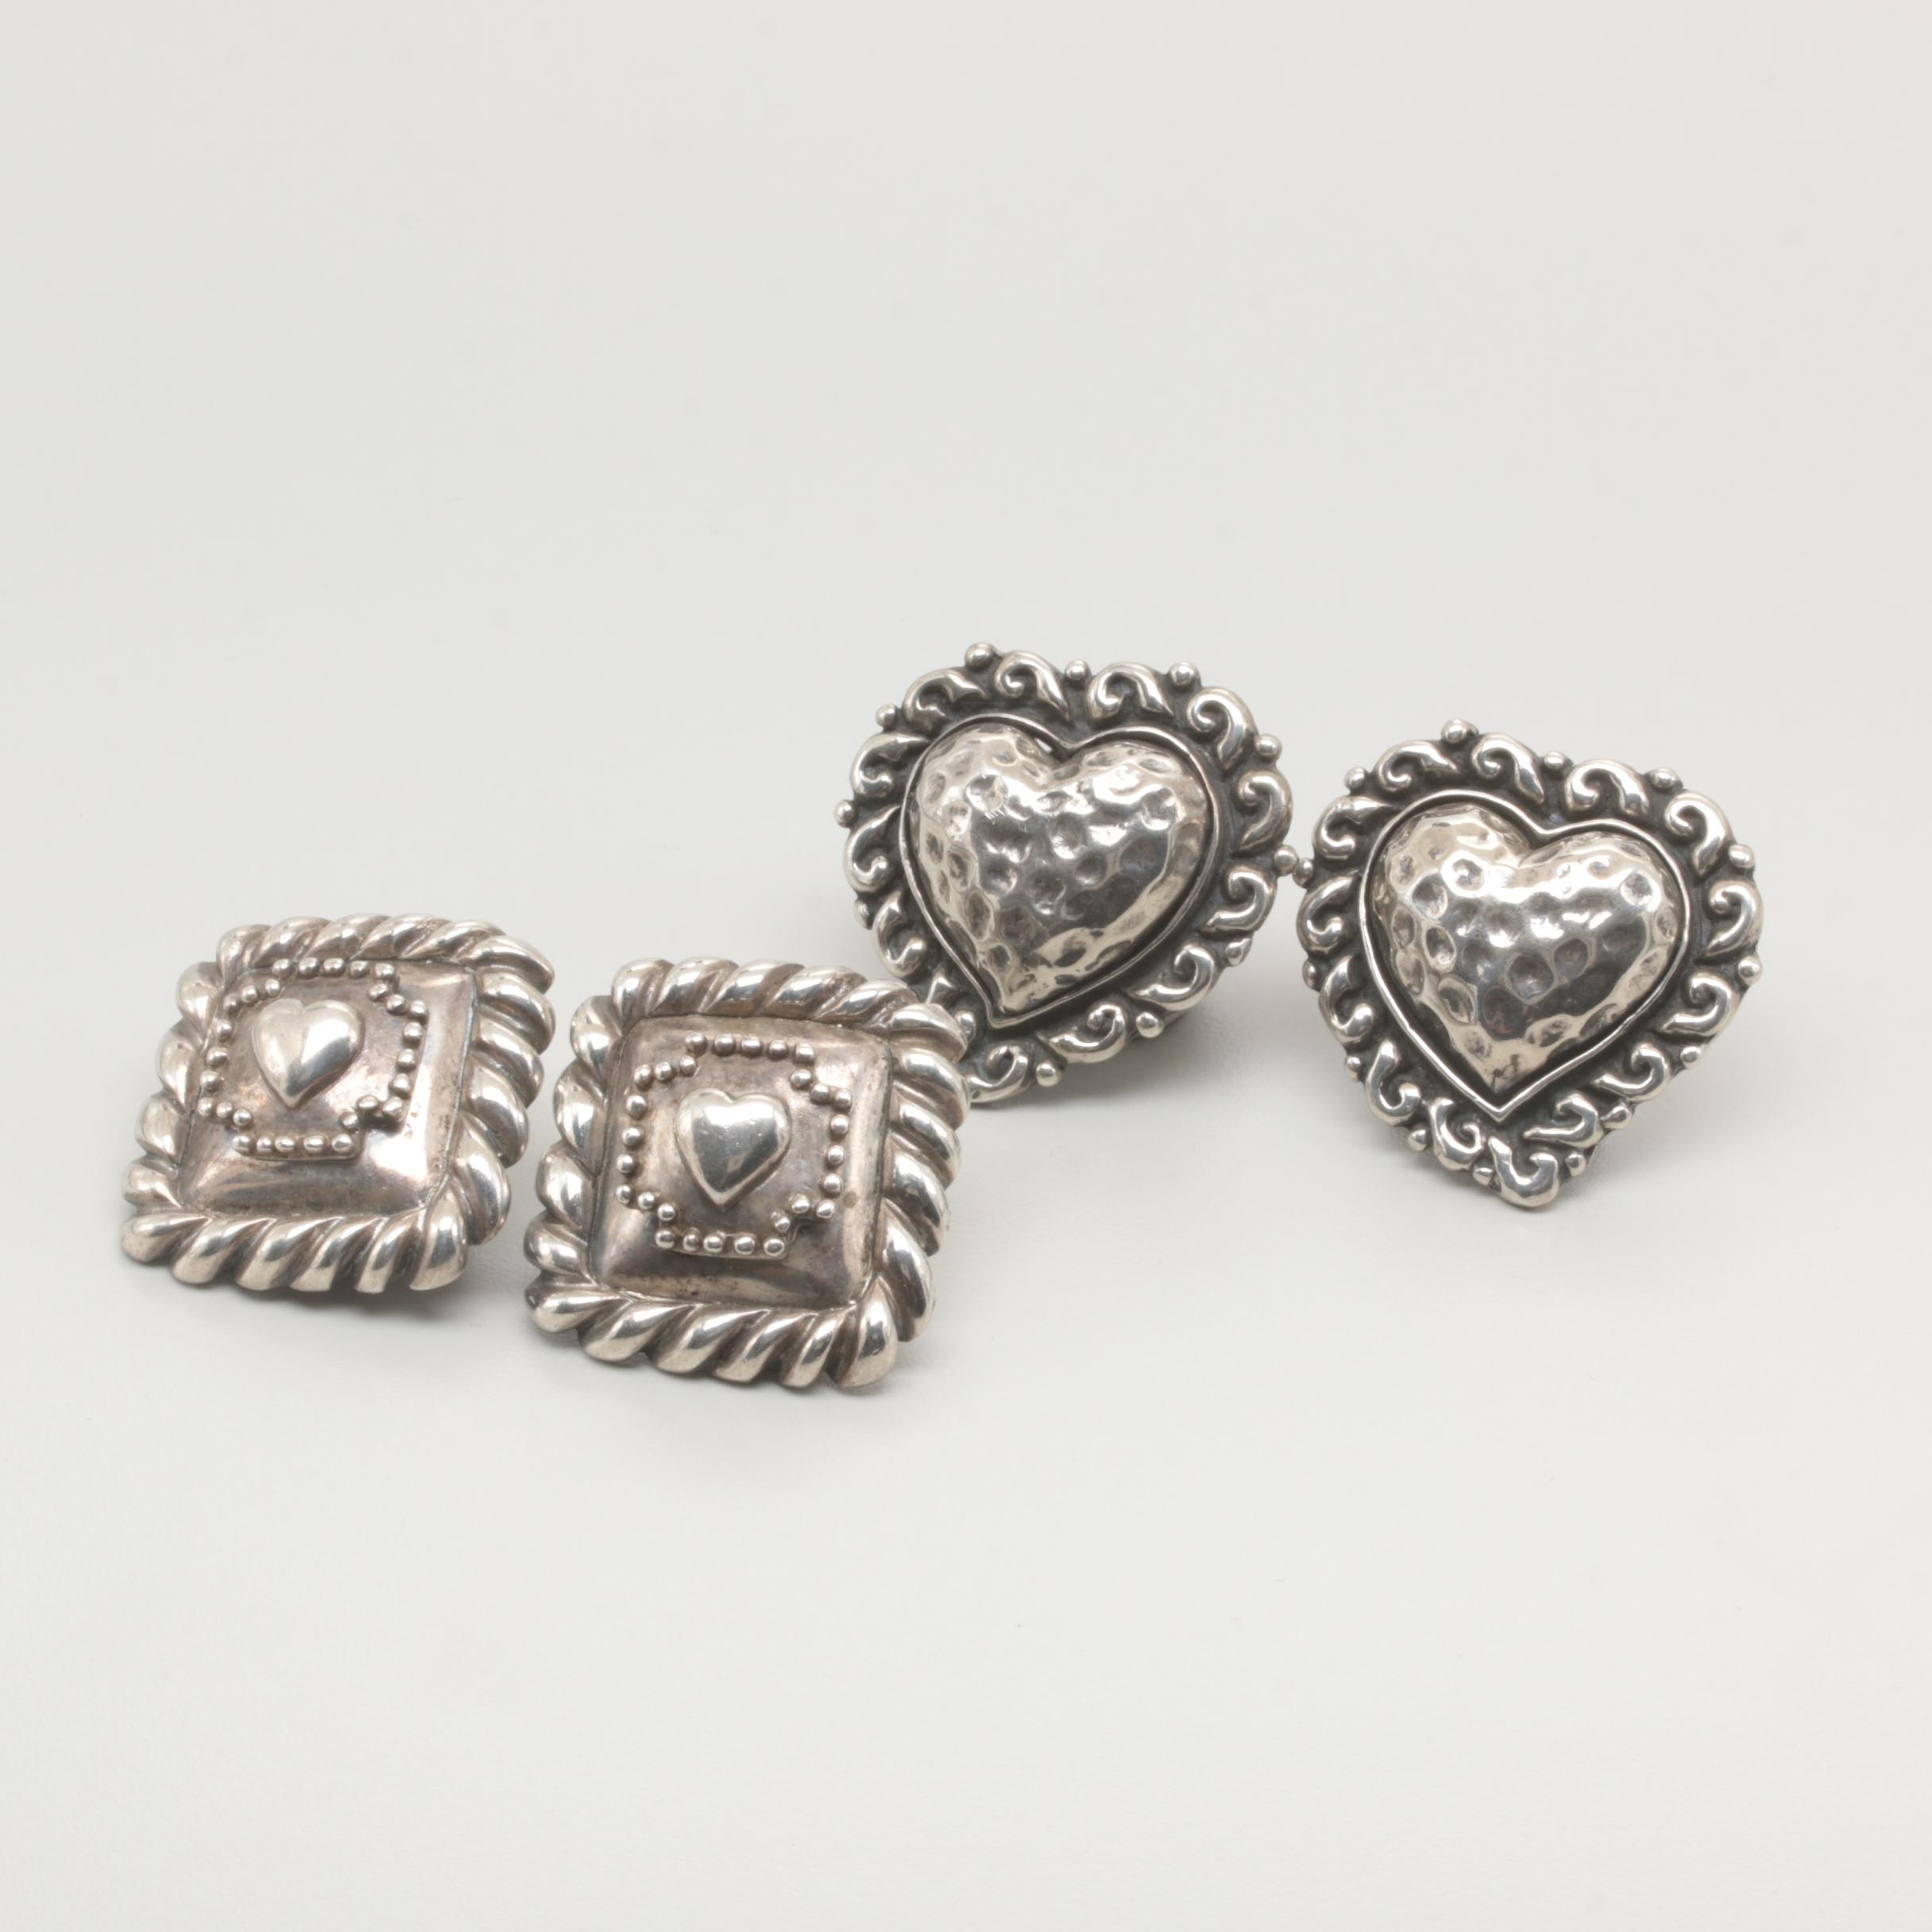 Sterling Silver Clip-On Earring Selection Featuring Heart Motifs by Dian Malouf